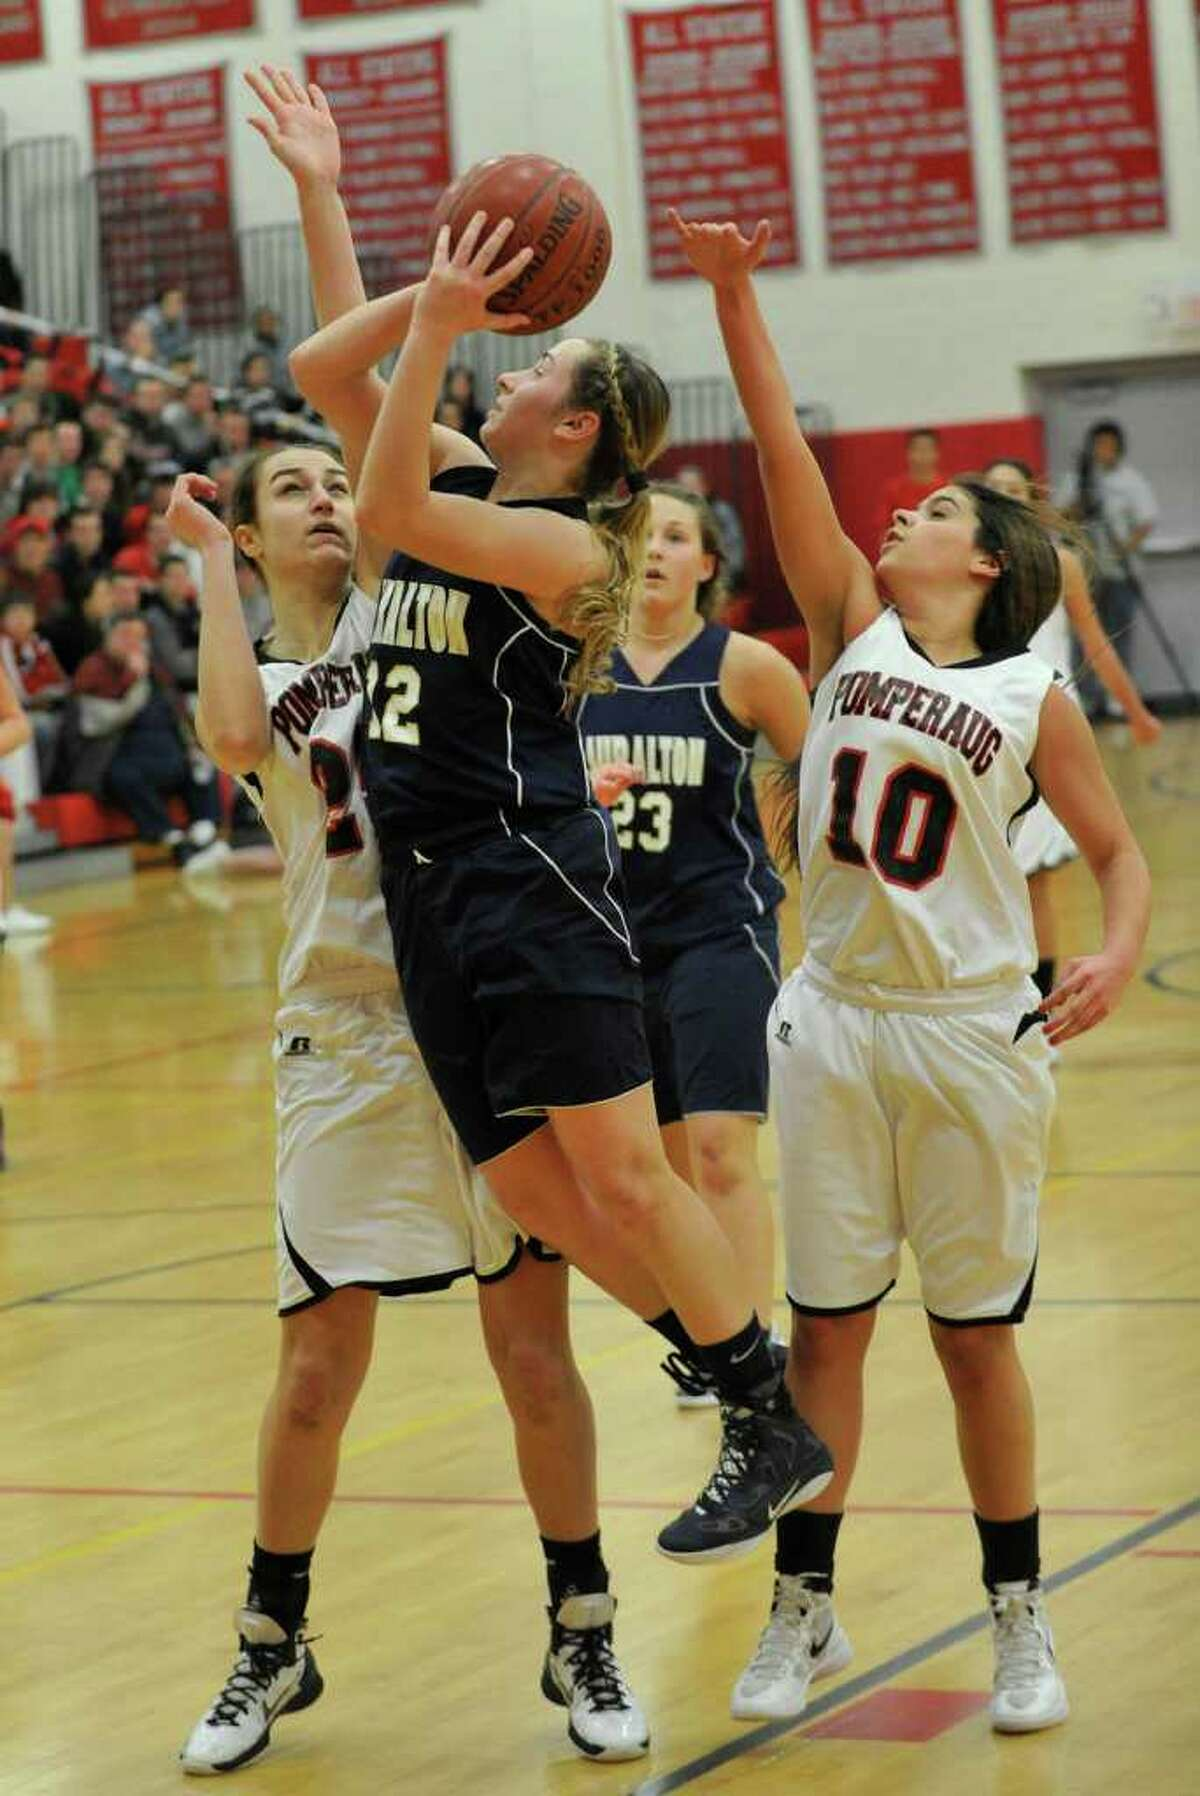 Lauralton Hall's Marisa Dowling shoots while under pressure from Pomperaug's Lauren Baranowski, left, and Hannah Metcalf during their game at Pomperaug High School in Southbury on Tuesday, Feb. 14, 2012. Lauralton Hall won 52-47.